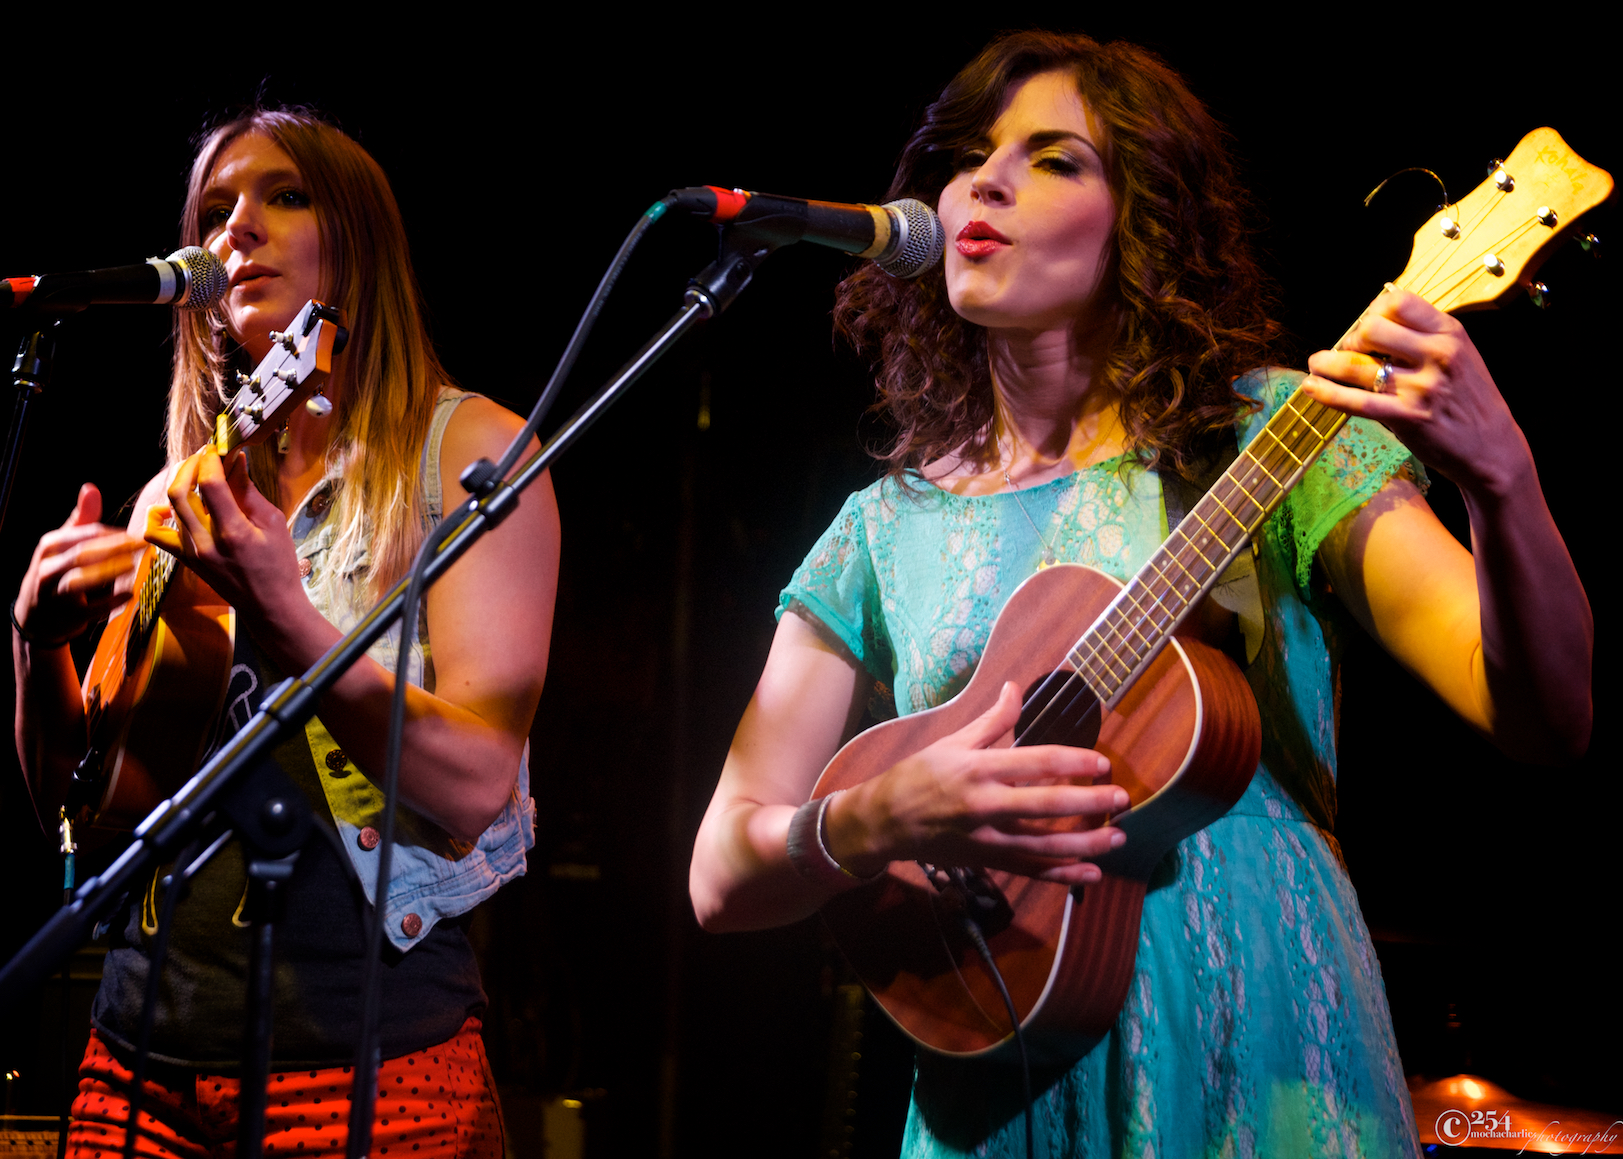 Heather Thomas & Kristen Palmer at The Tractor Tavern (Photo by Mocha Charlie)